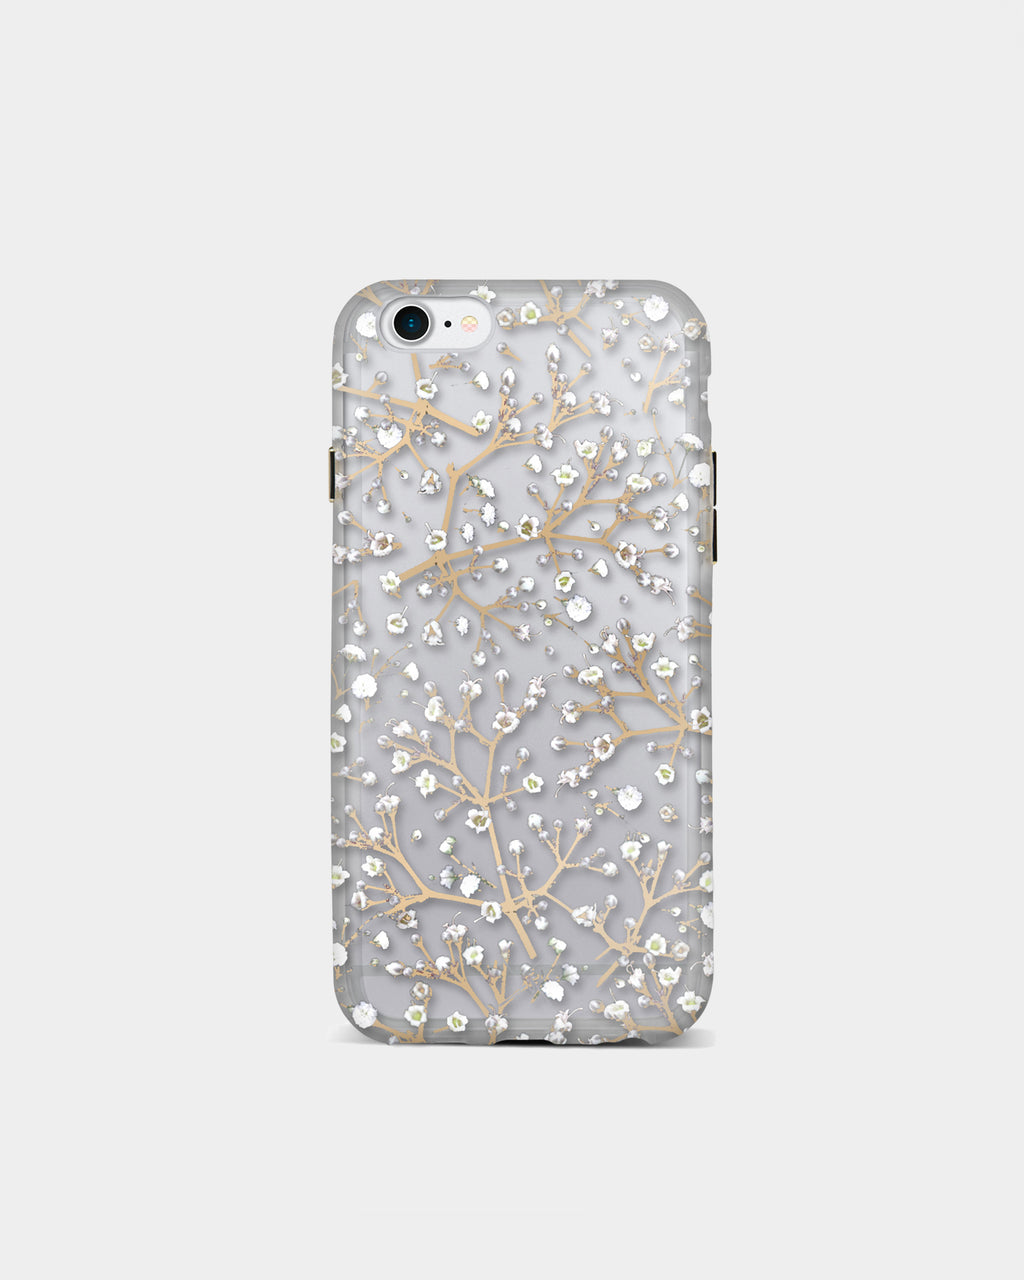 IC7004 - FLORAL iPHONE 7 case - accessories - fashion tech - This clear case, finished in a baby's breath print is made for the iPhone 7.